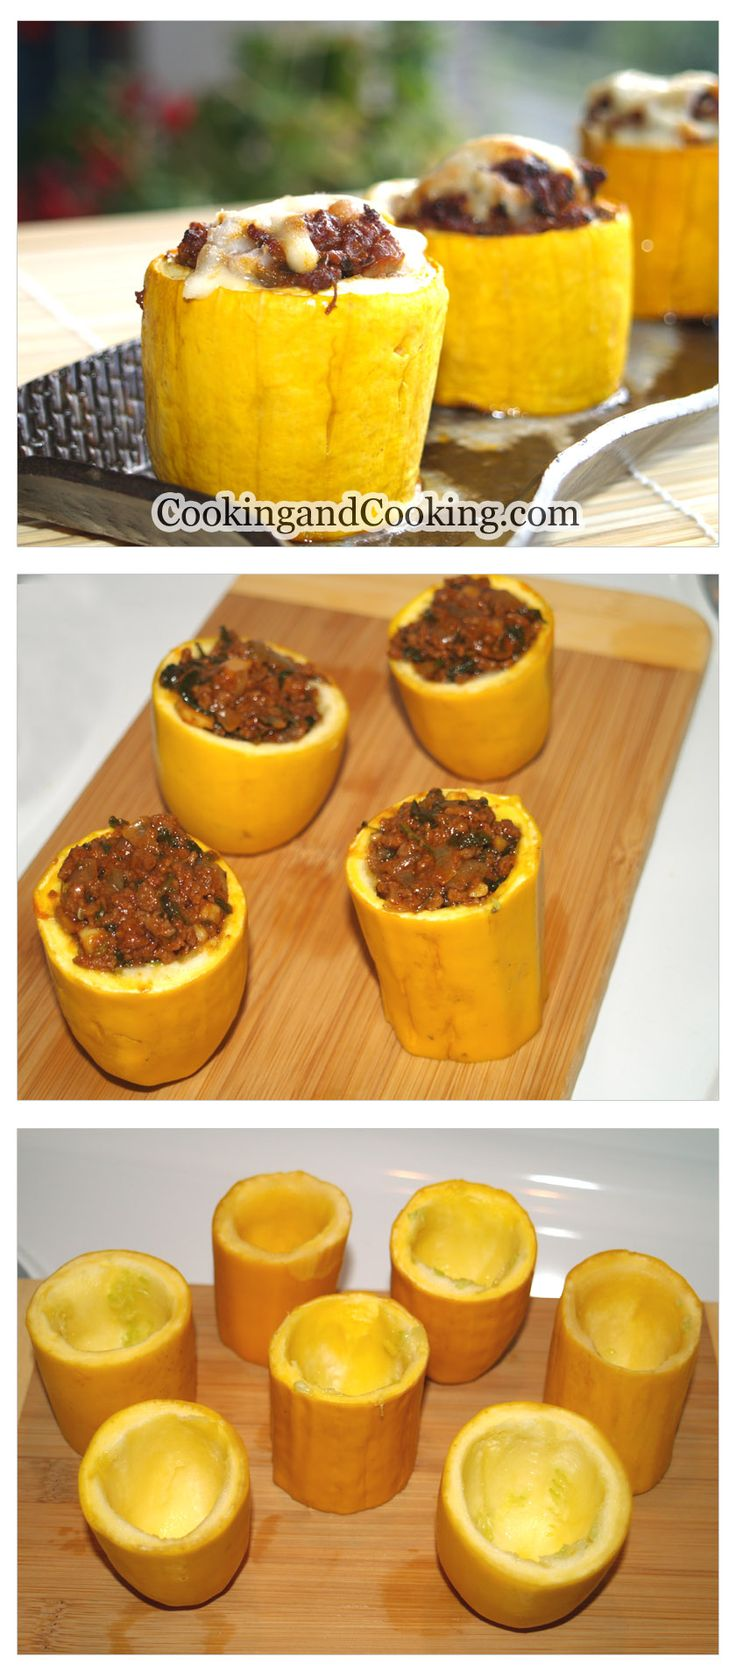 Stuffed Zucchini with Ground Beef Recipe